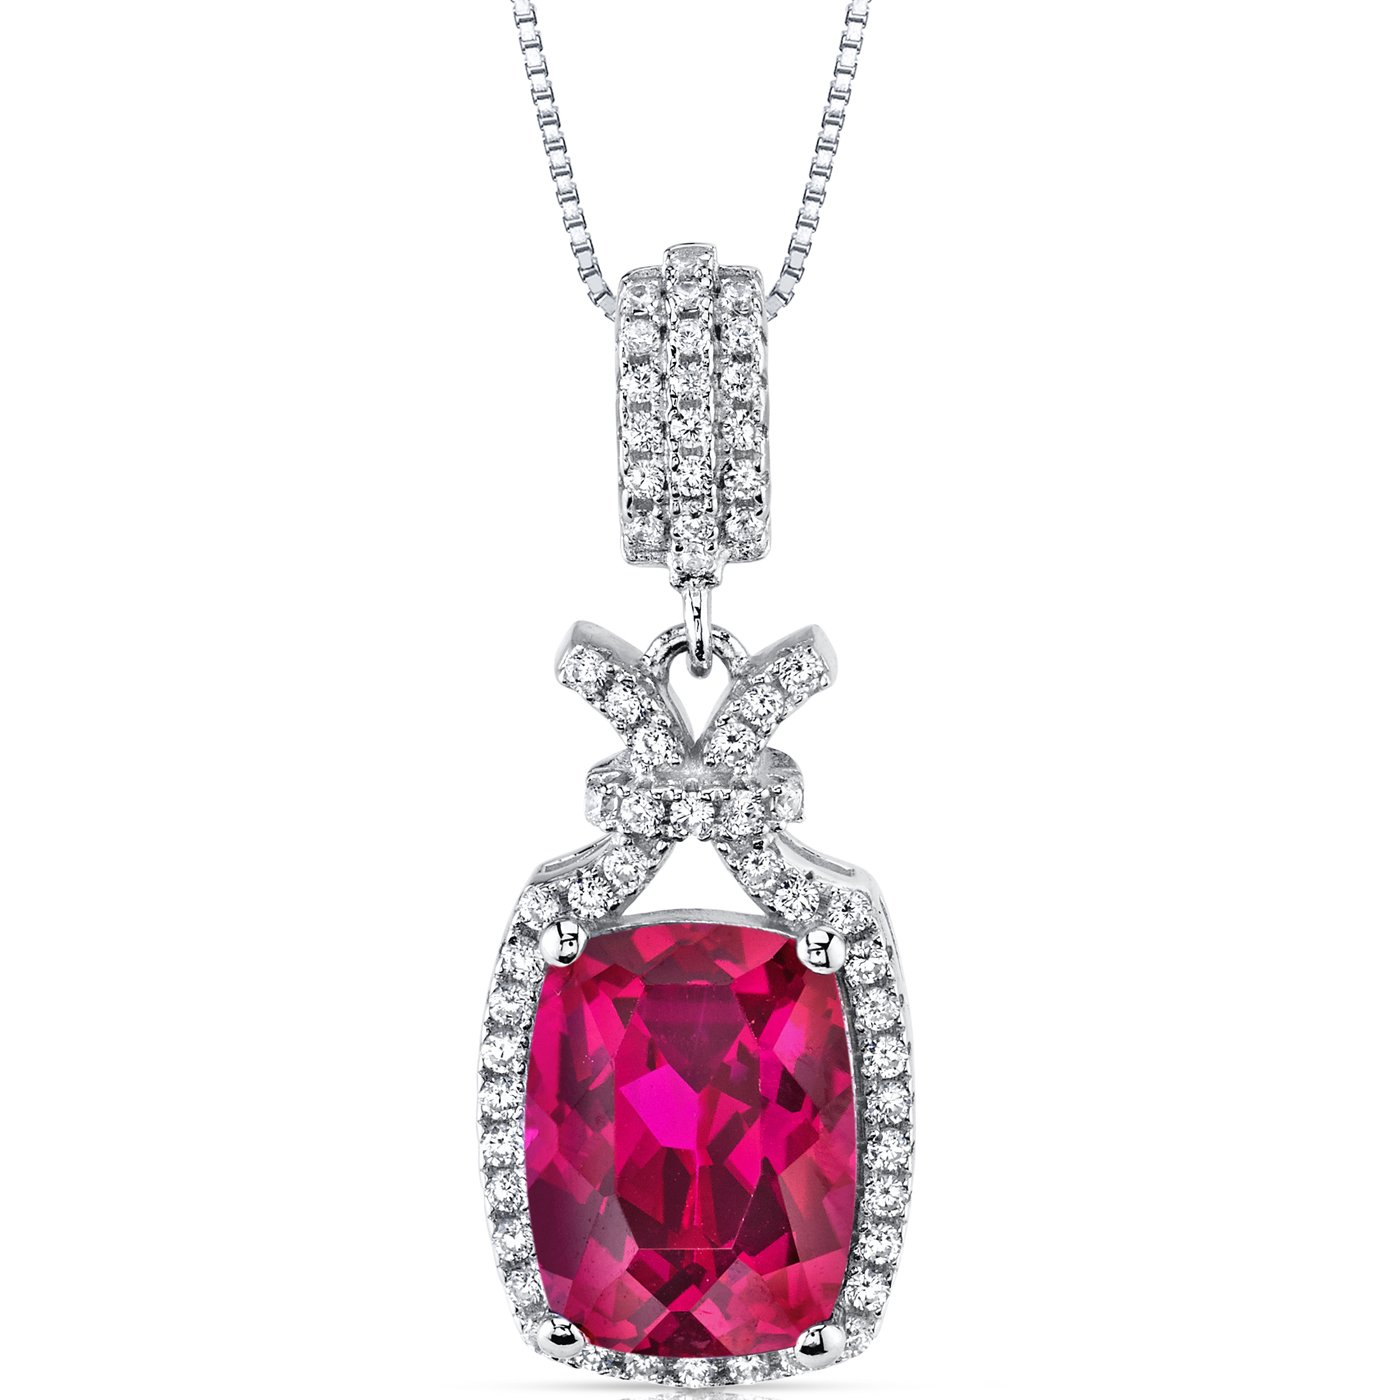 5.00 Carats Created Ruby Pendant Necklace Sterling Silver Cushion Cut